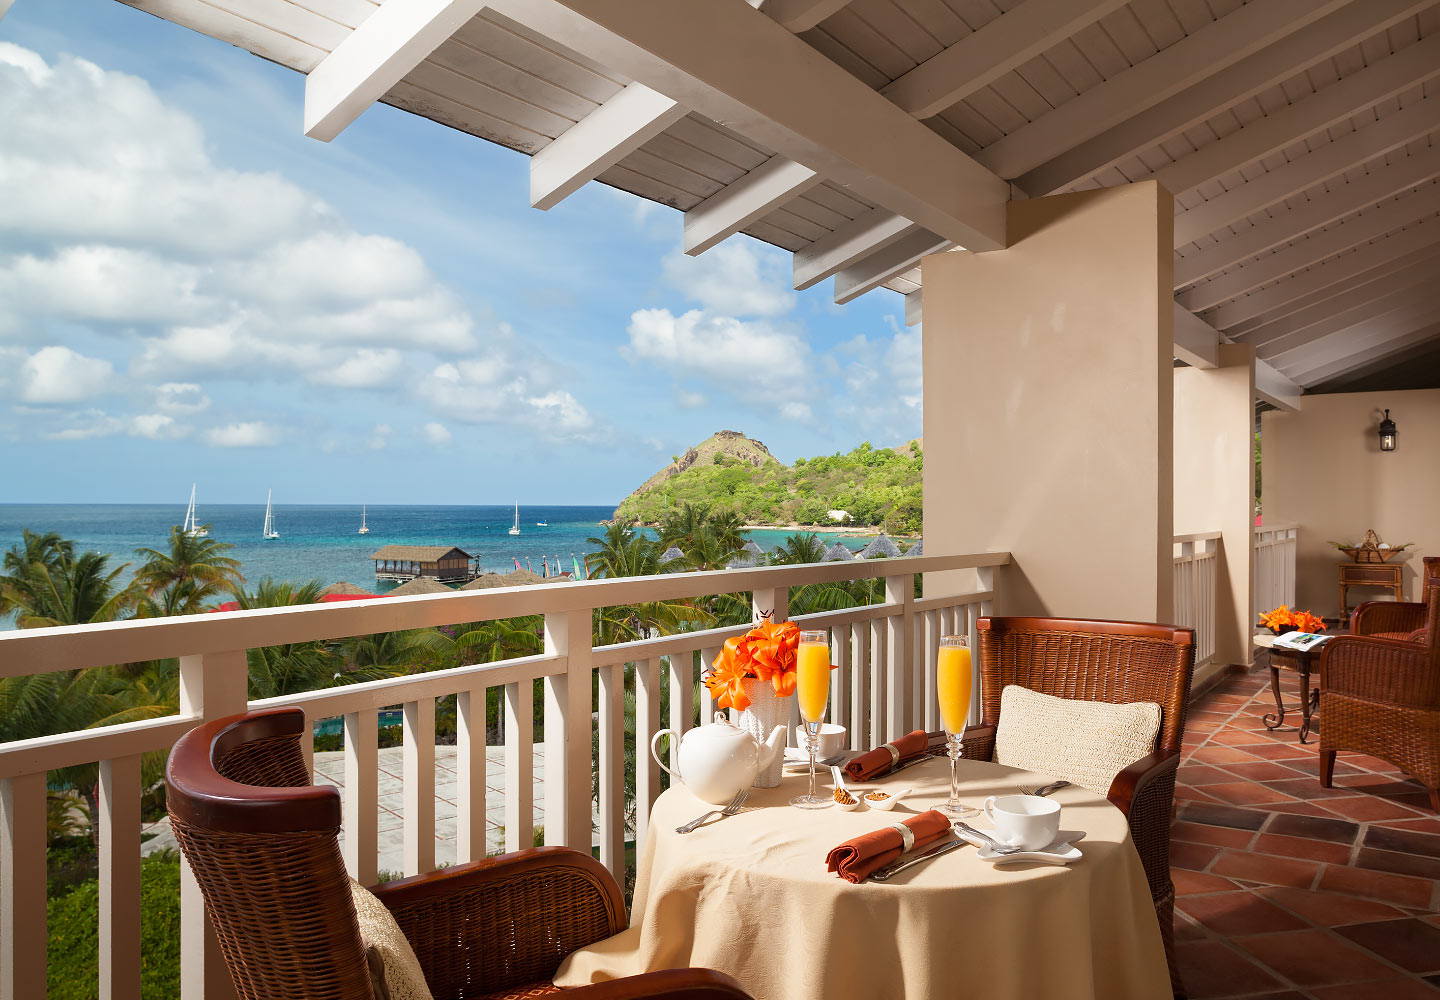 SANDALS GRANDE ST. LUCIAN CASTRIES, SAINT LUCIA Coupon